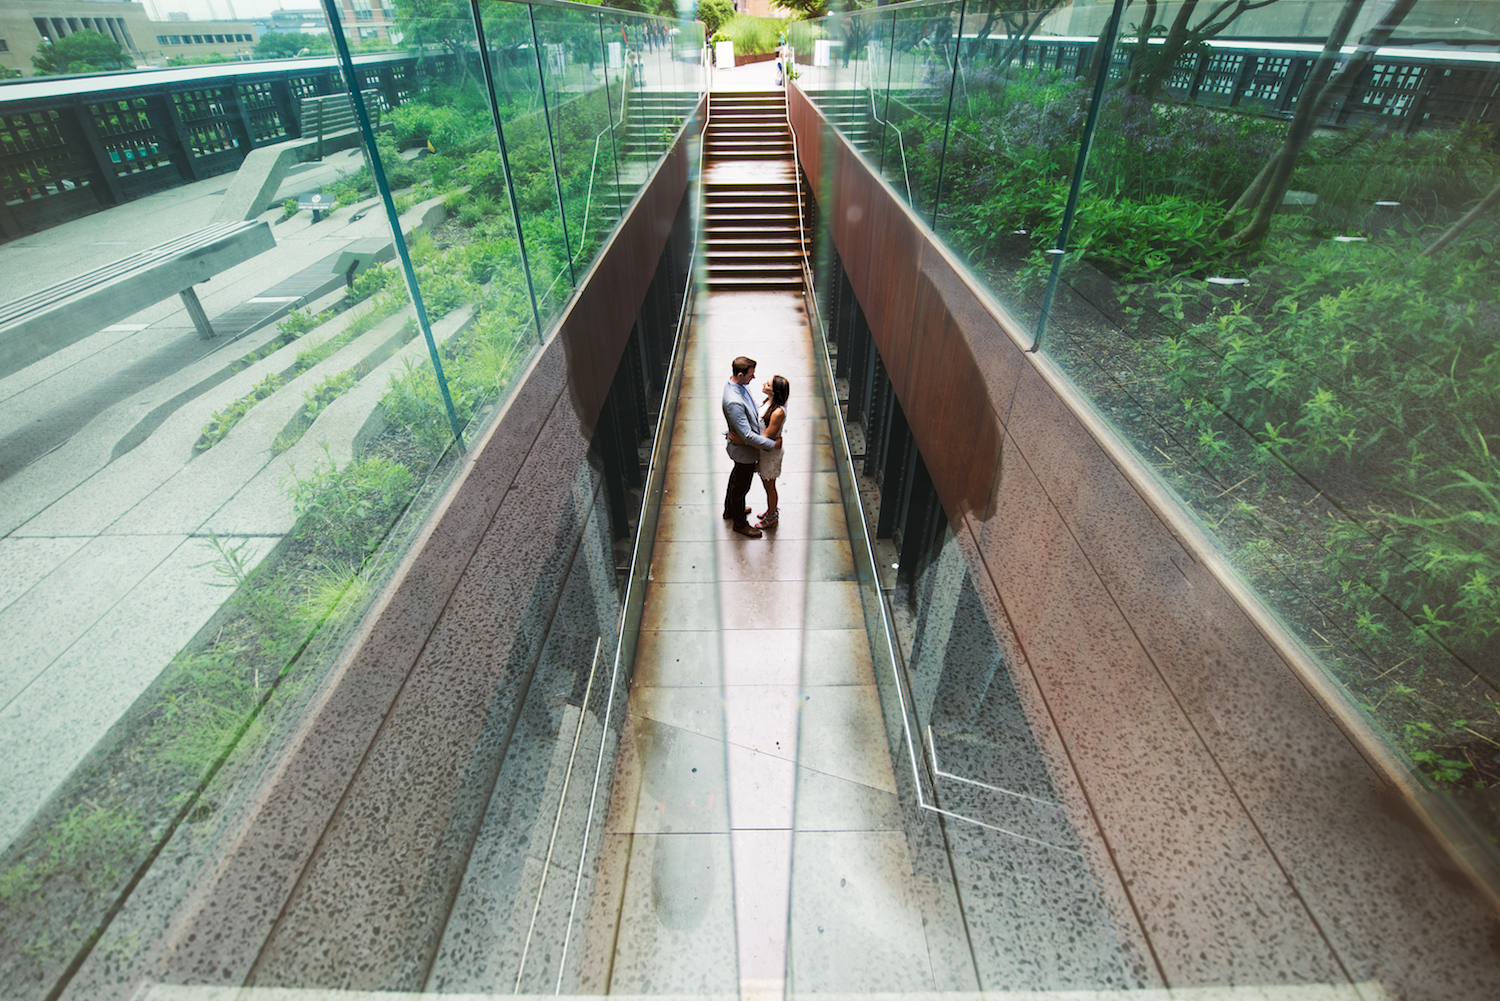 mike-&-kayla-embracing-in-glass-walled-walkway-ny-nj-engagement-photos